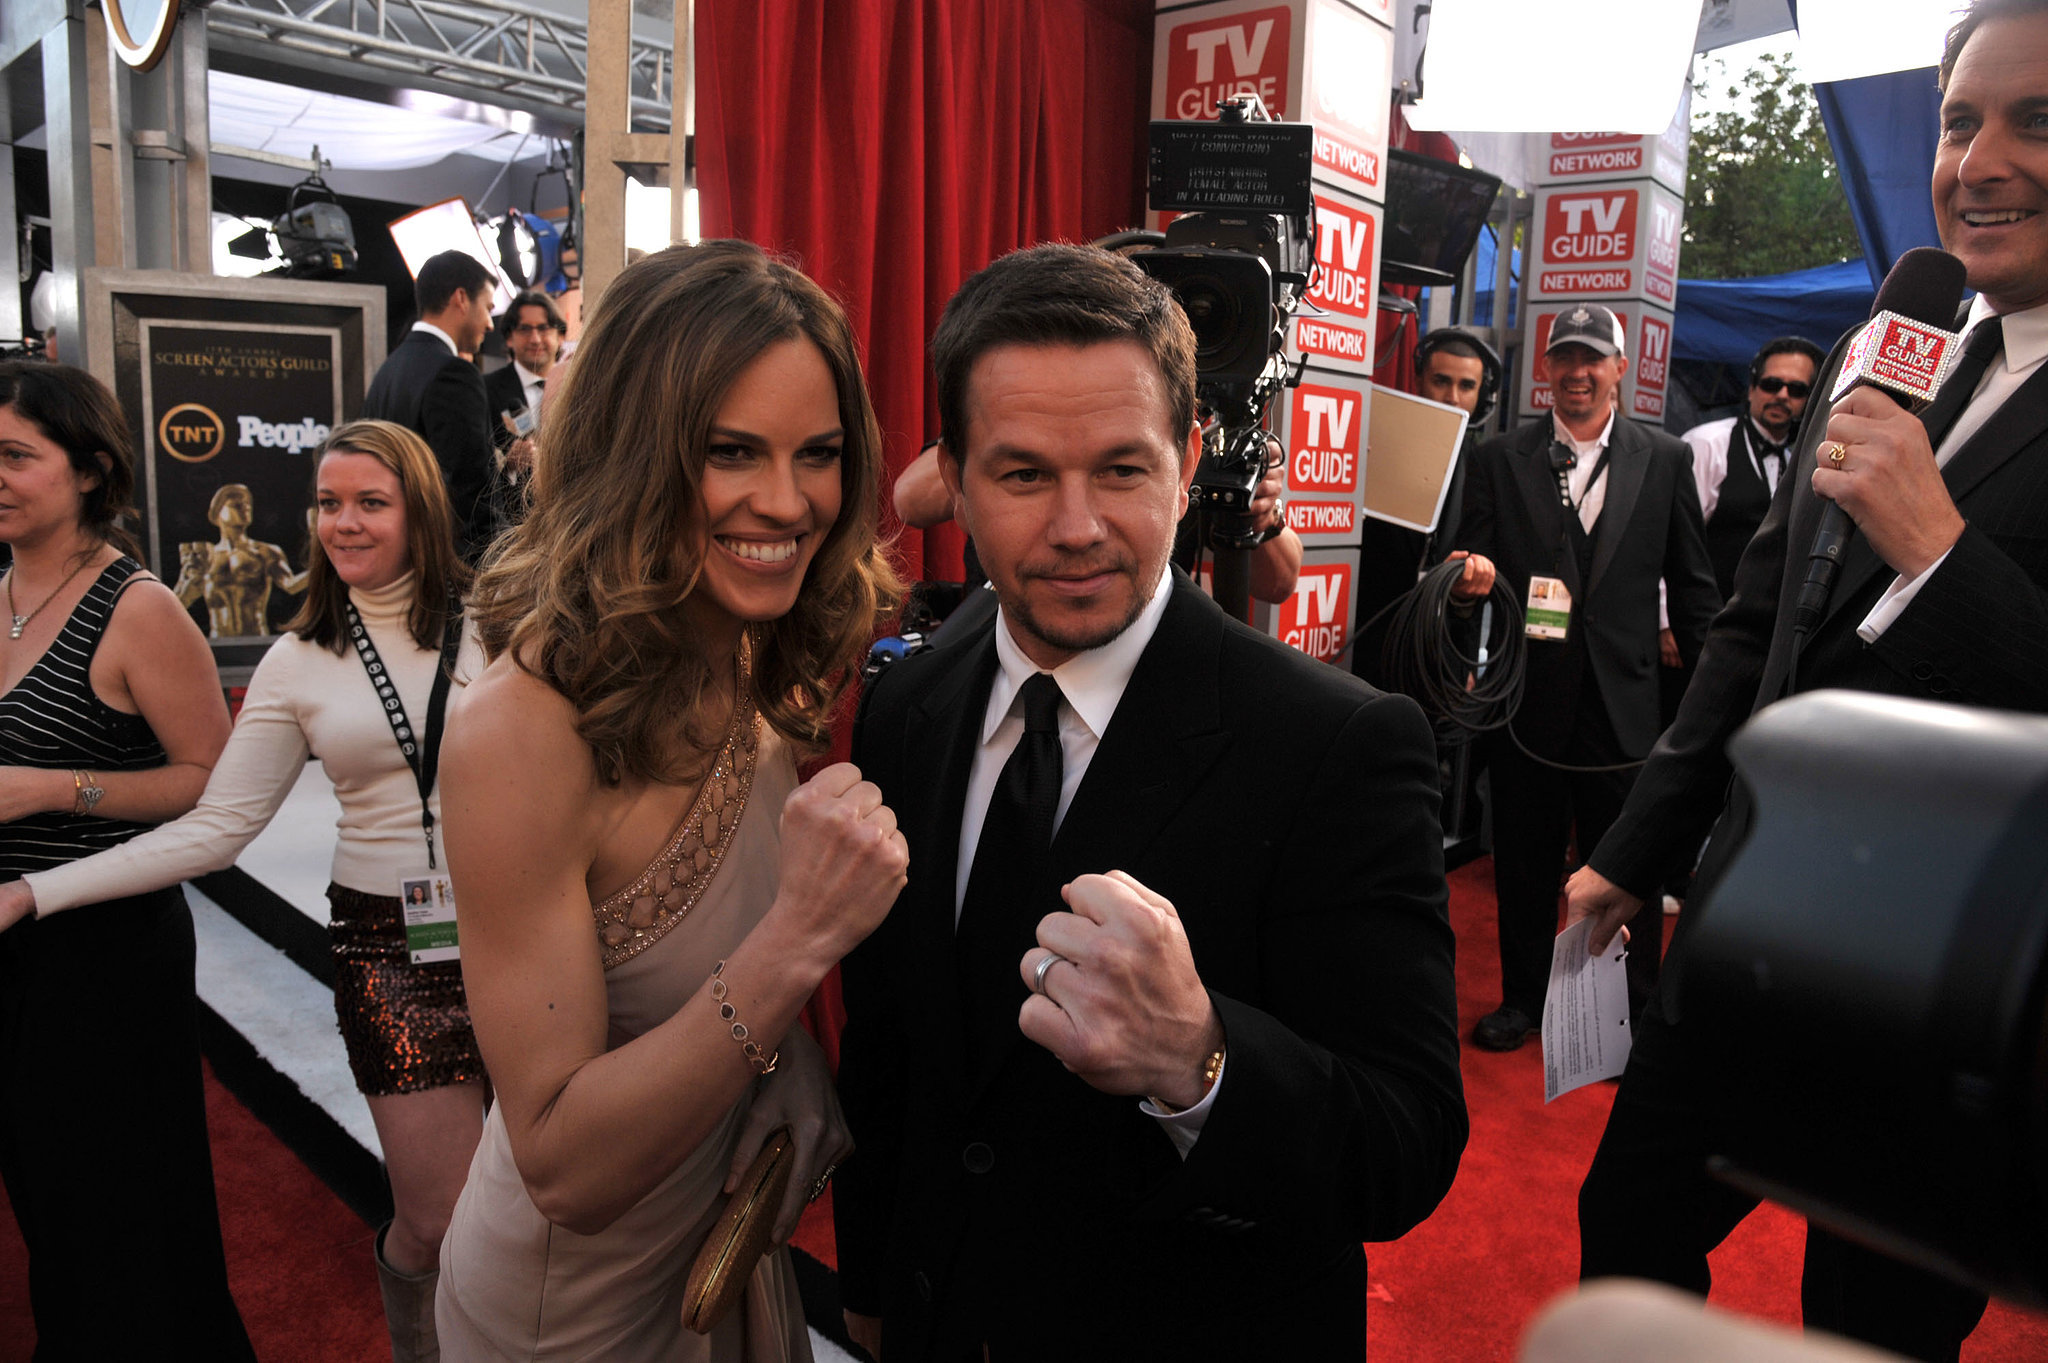 Onscreen fighters Hilary Swank and Mark Wahlberg threw their fists up for photographers on the SAG Awards red carpet in 2011.